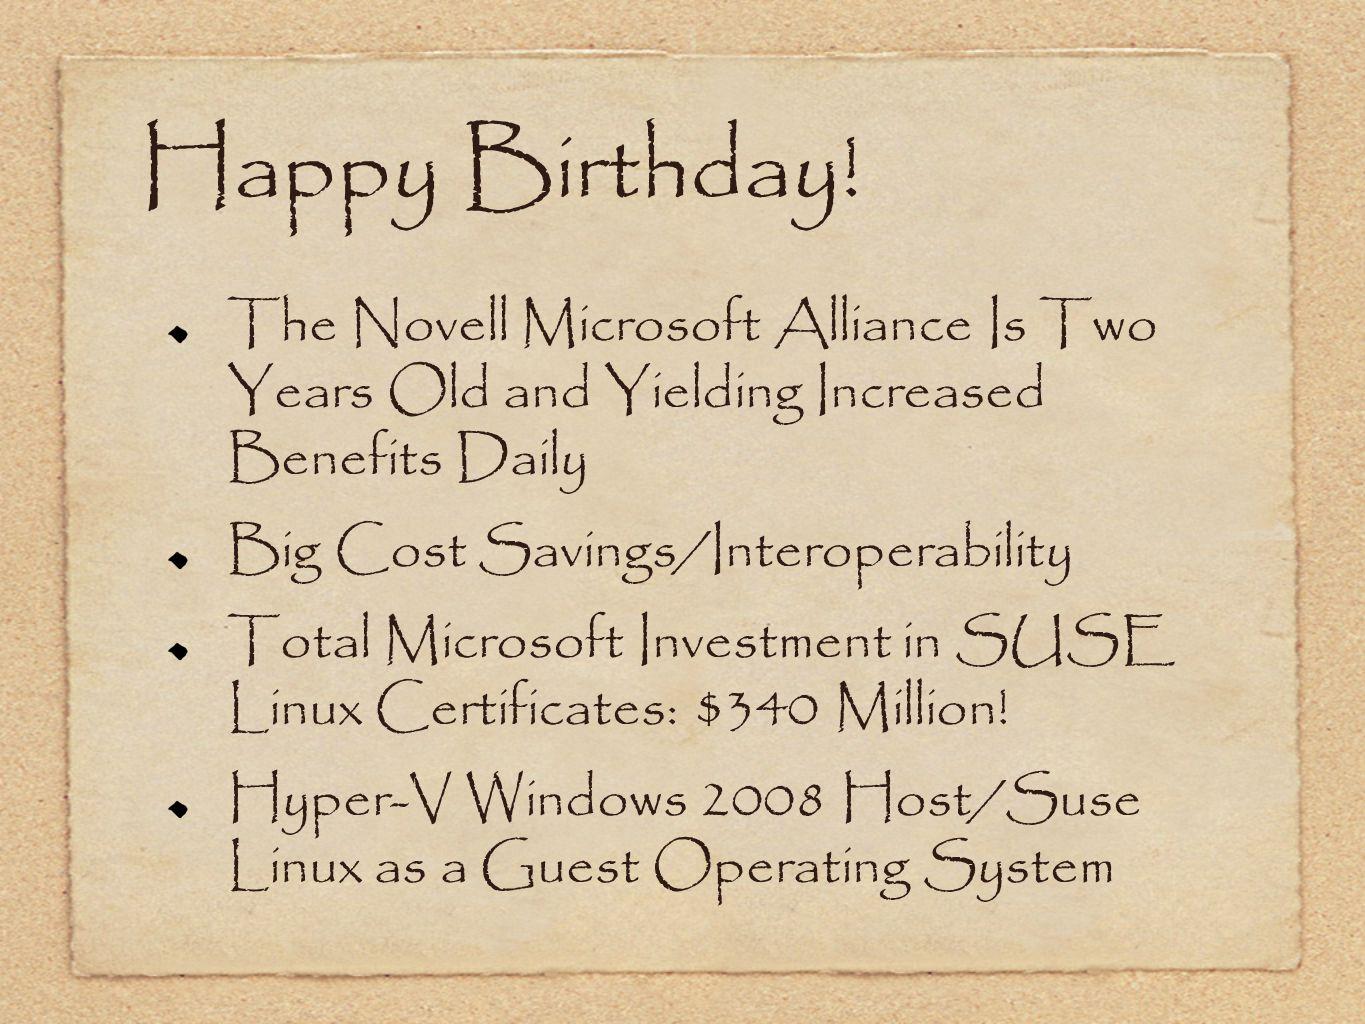 Happy Birthday! The Novell Microsoft Alliance Is Two Years Old and Yielding Increased Benefits Daily Big Cost Savings/Interoperability Total Microsoft